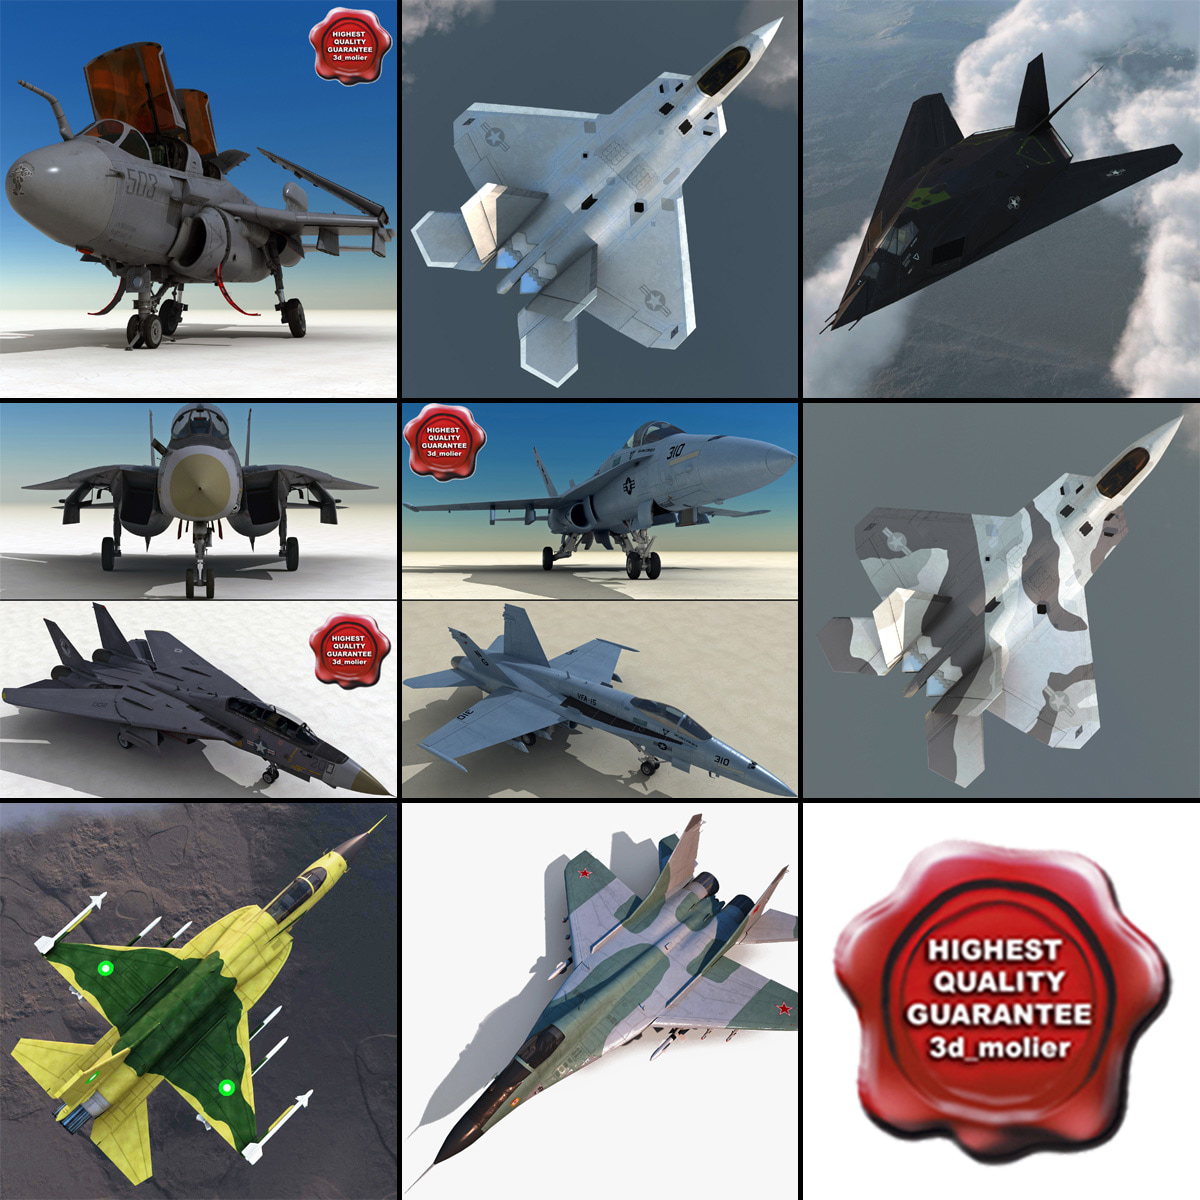 Jet Fighters Collection 7.jpg